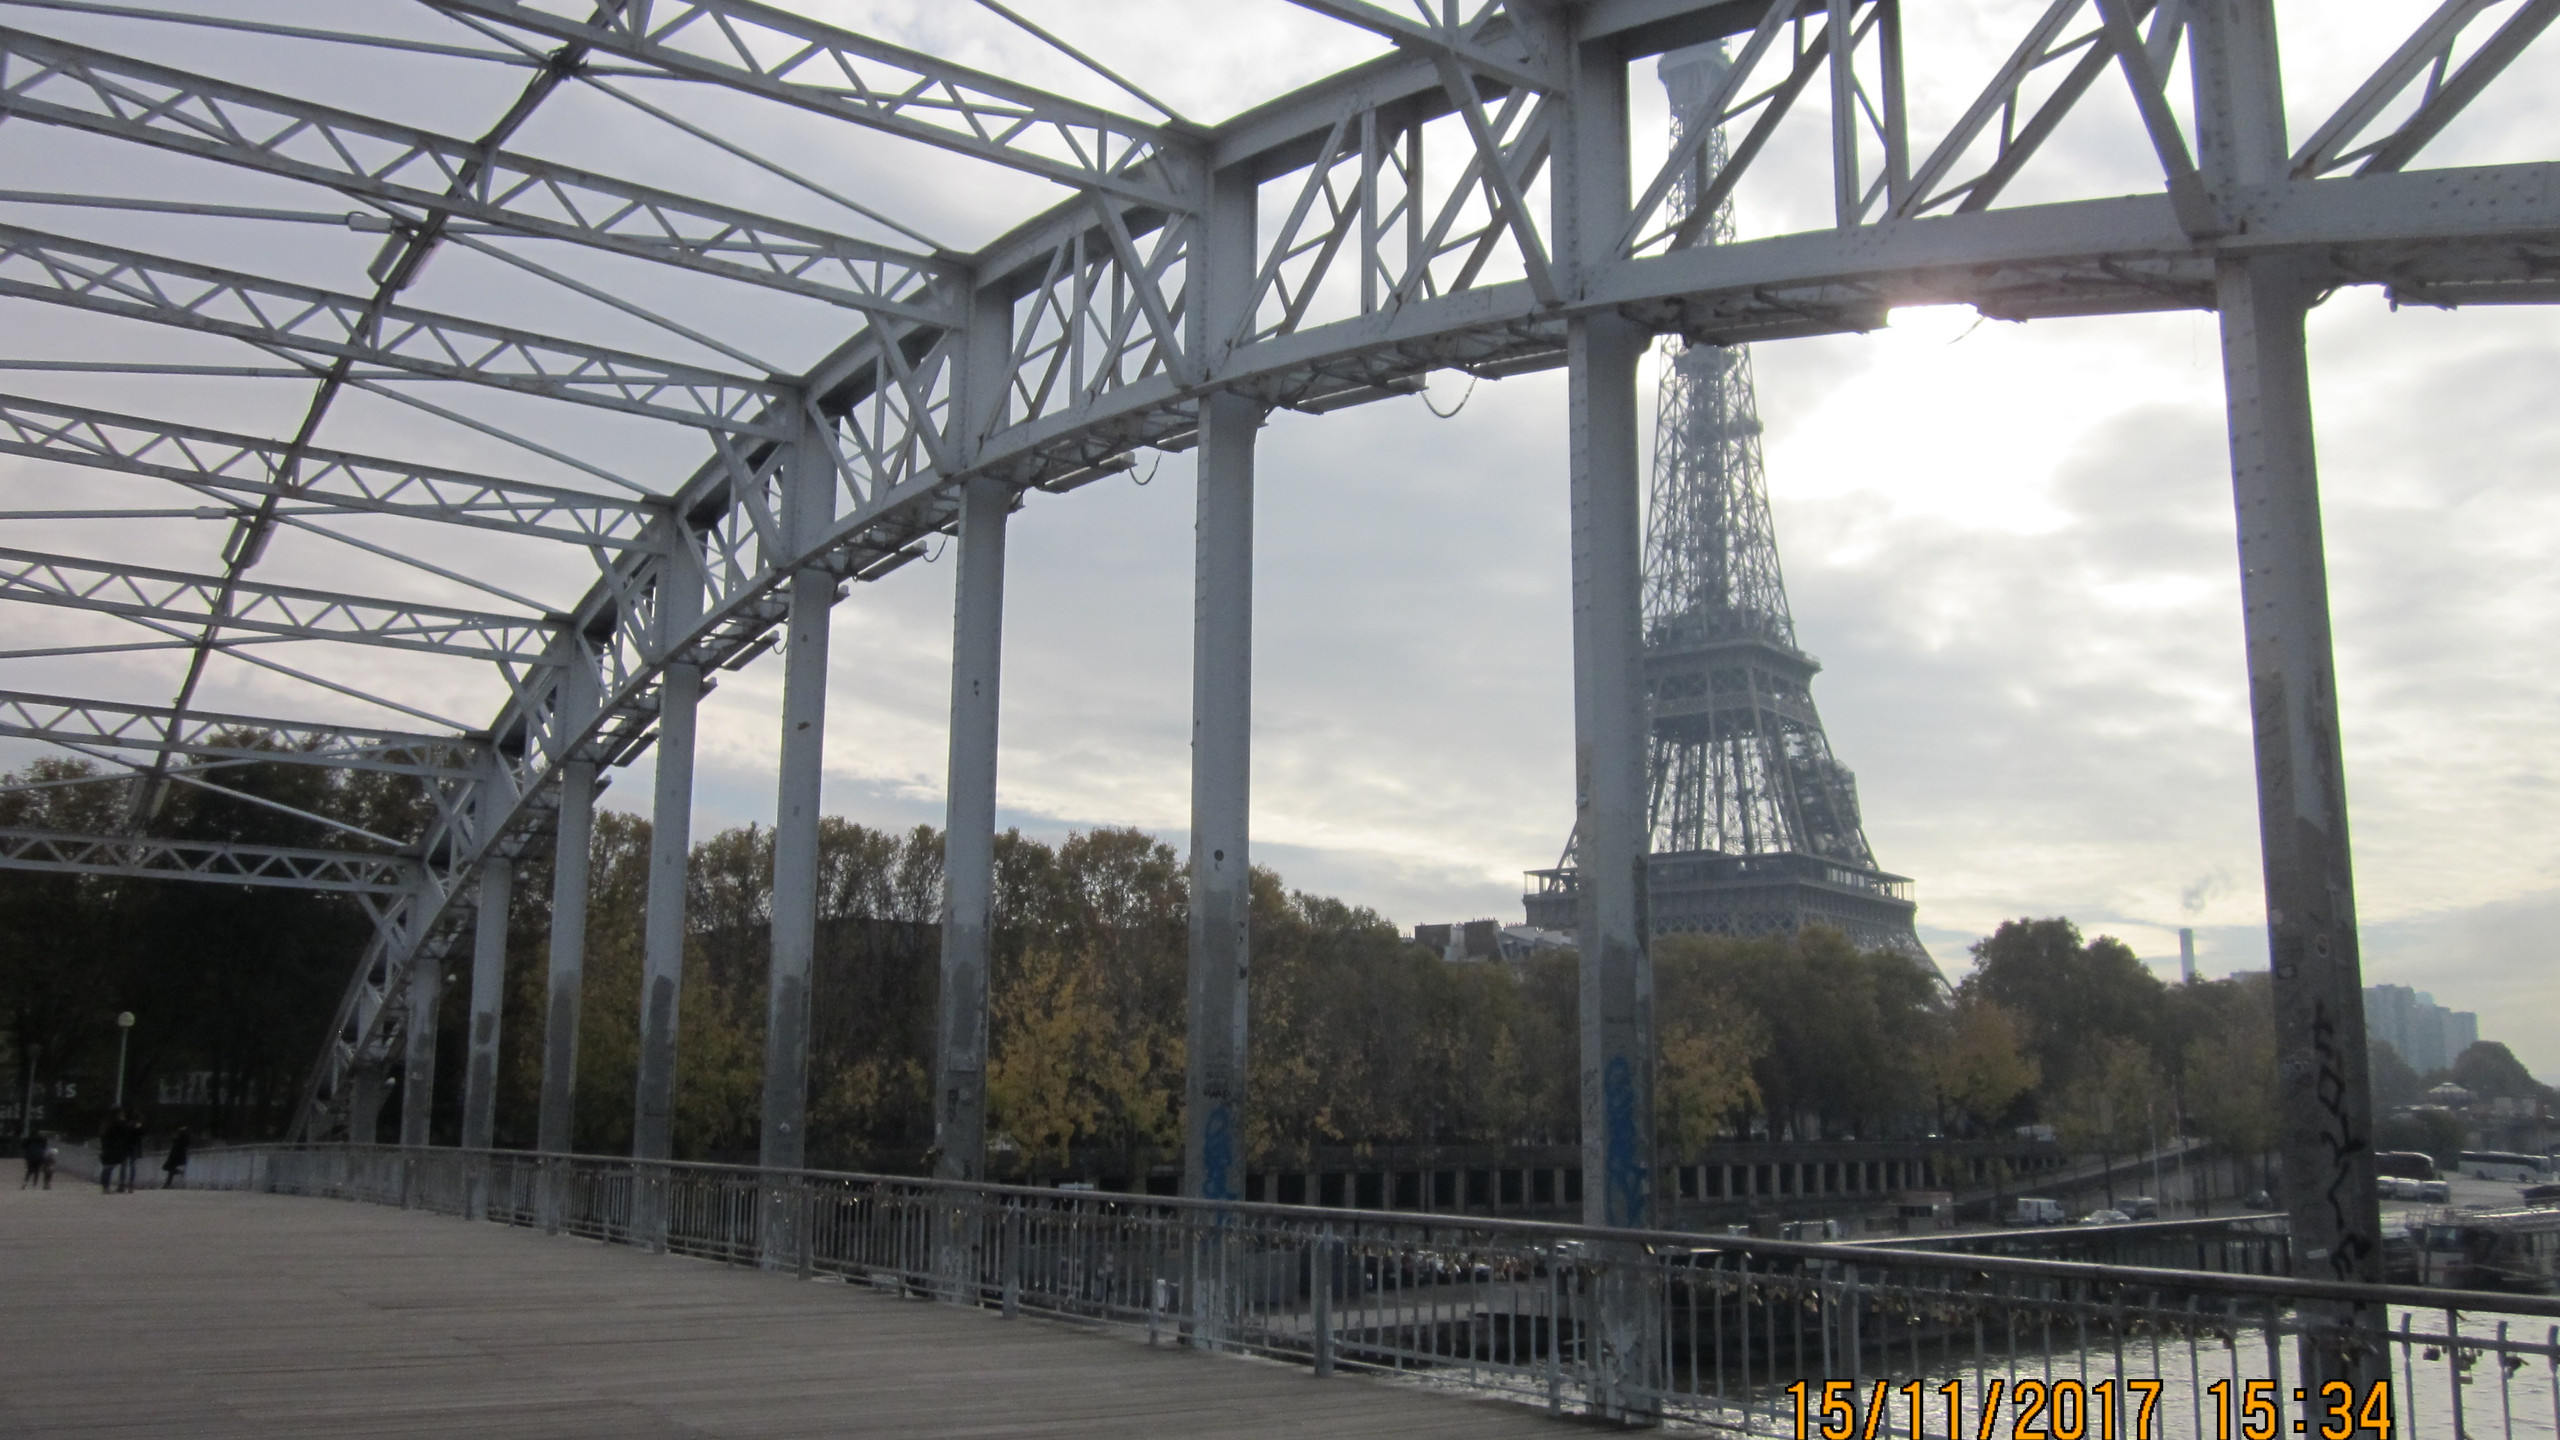 View of the Eiffel Tower from Passerelle Débilly